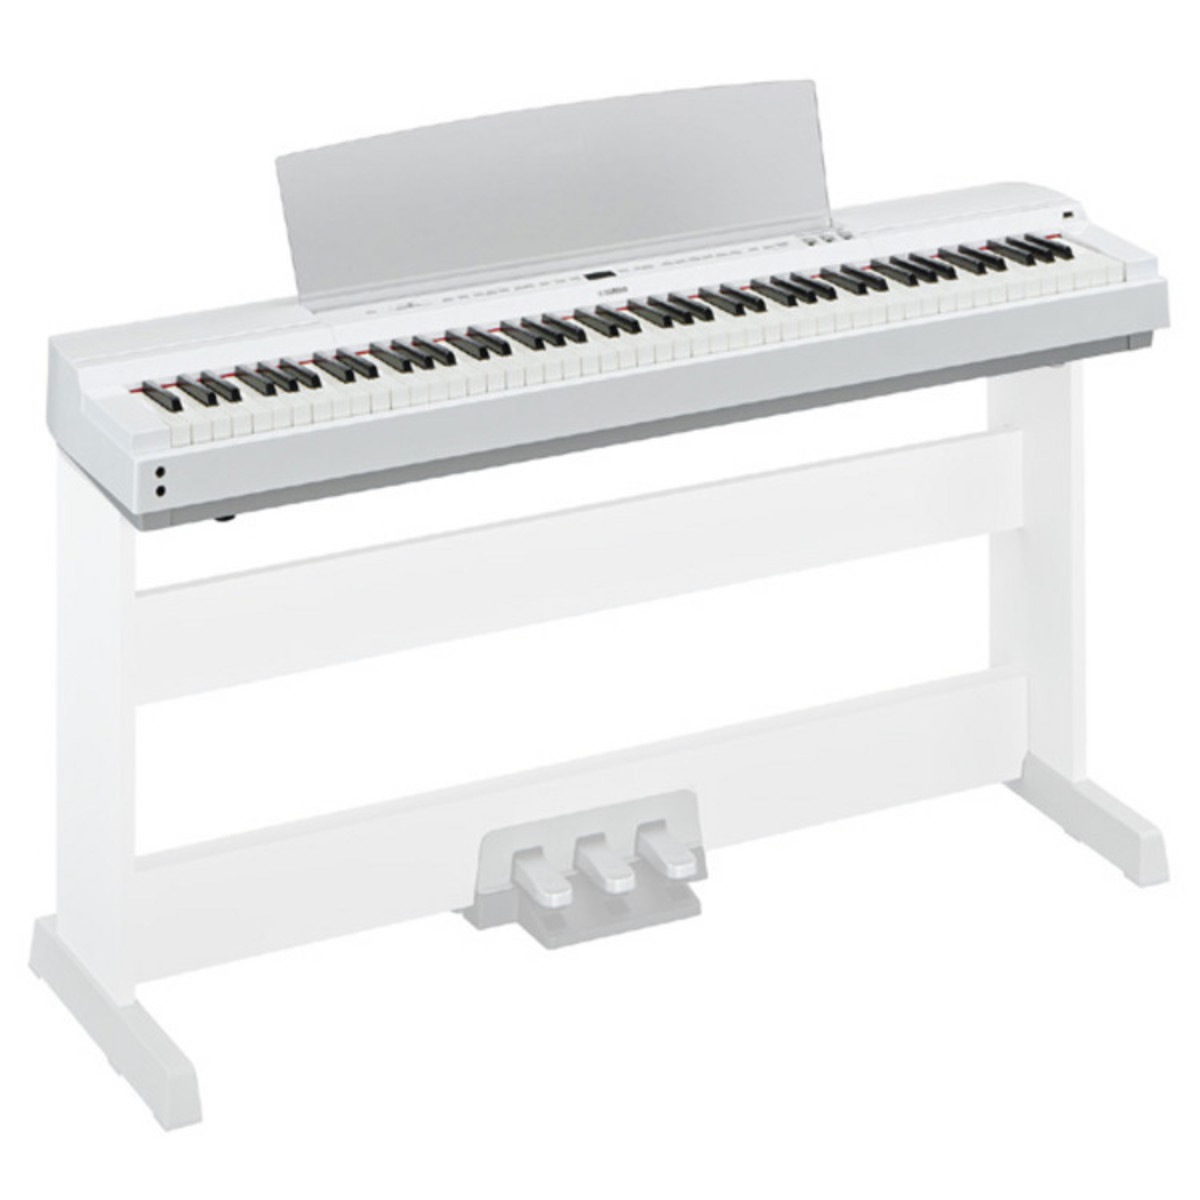 Yamaha p255 lightweight digital piano white at for White yamaha piano